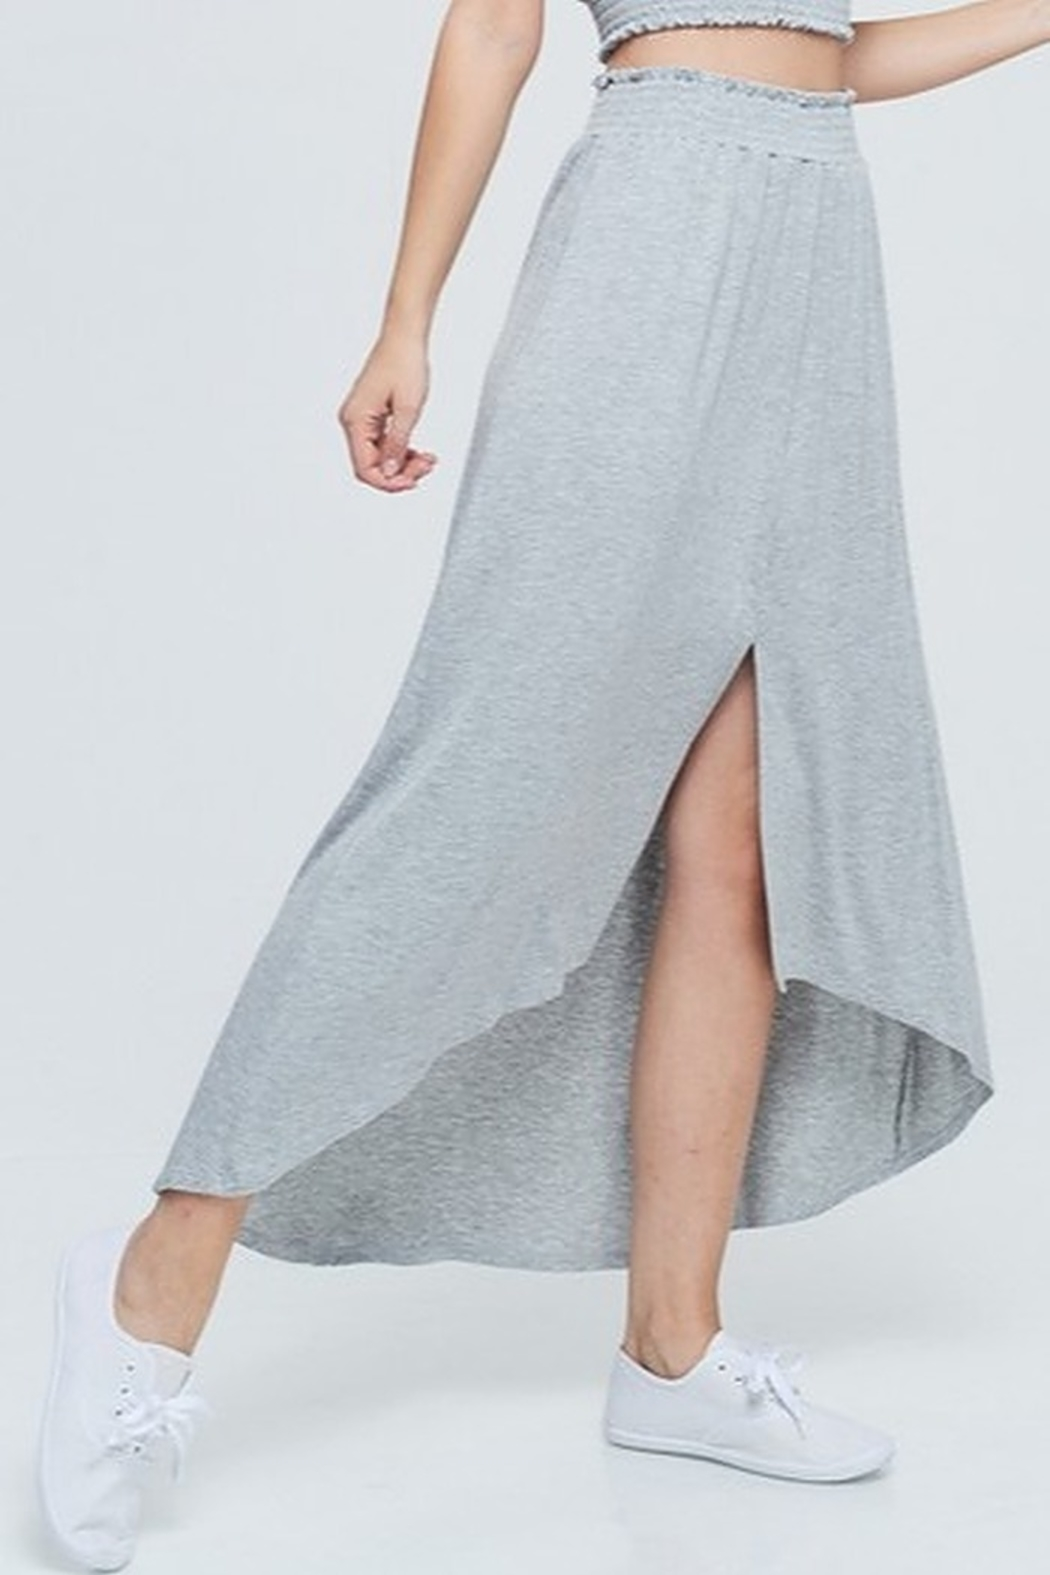 Papermoon Smocked Waist Skirt - Side Cropped Image